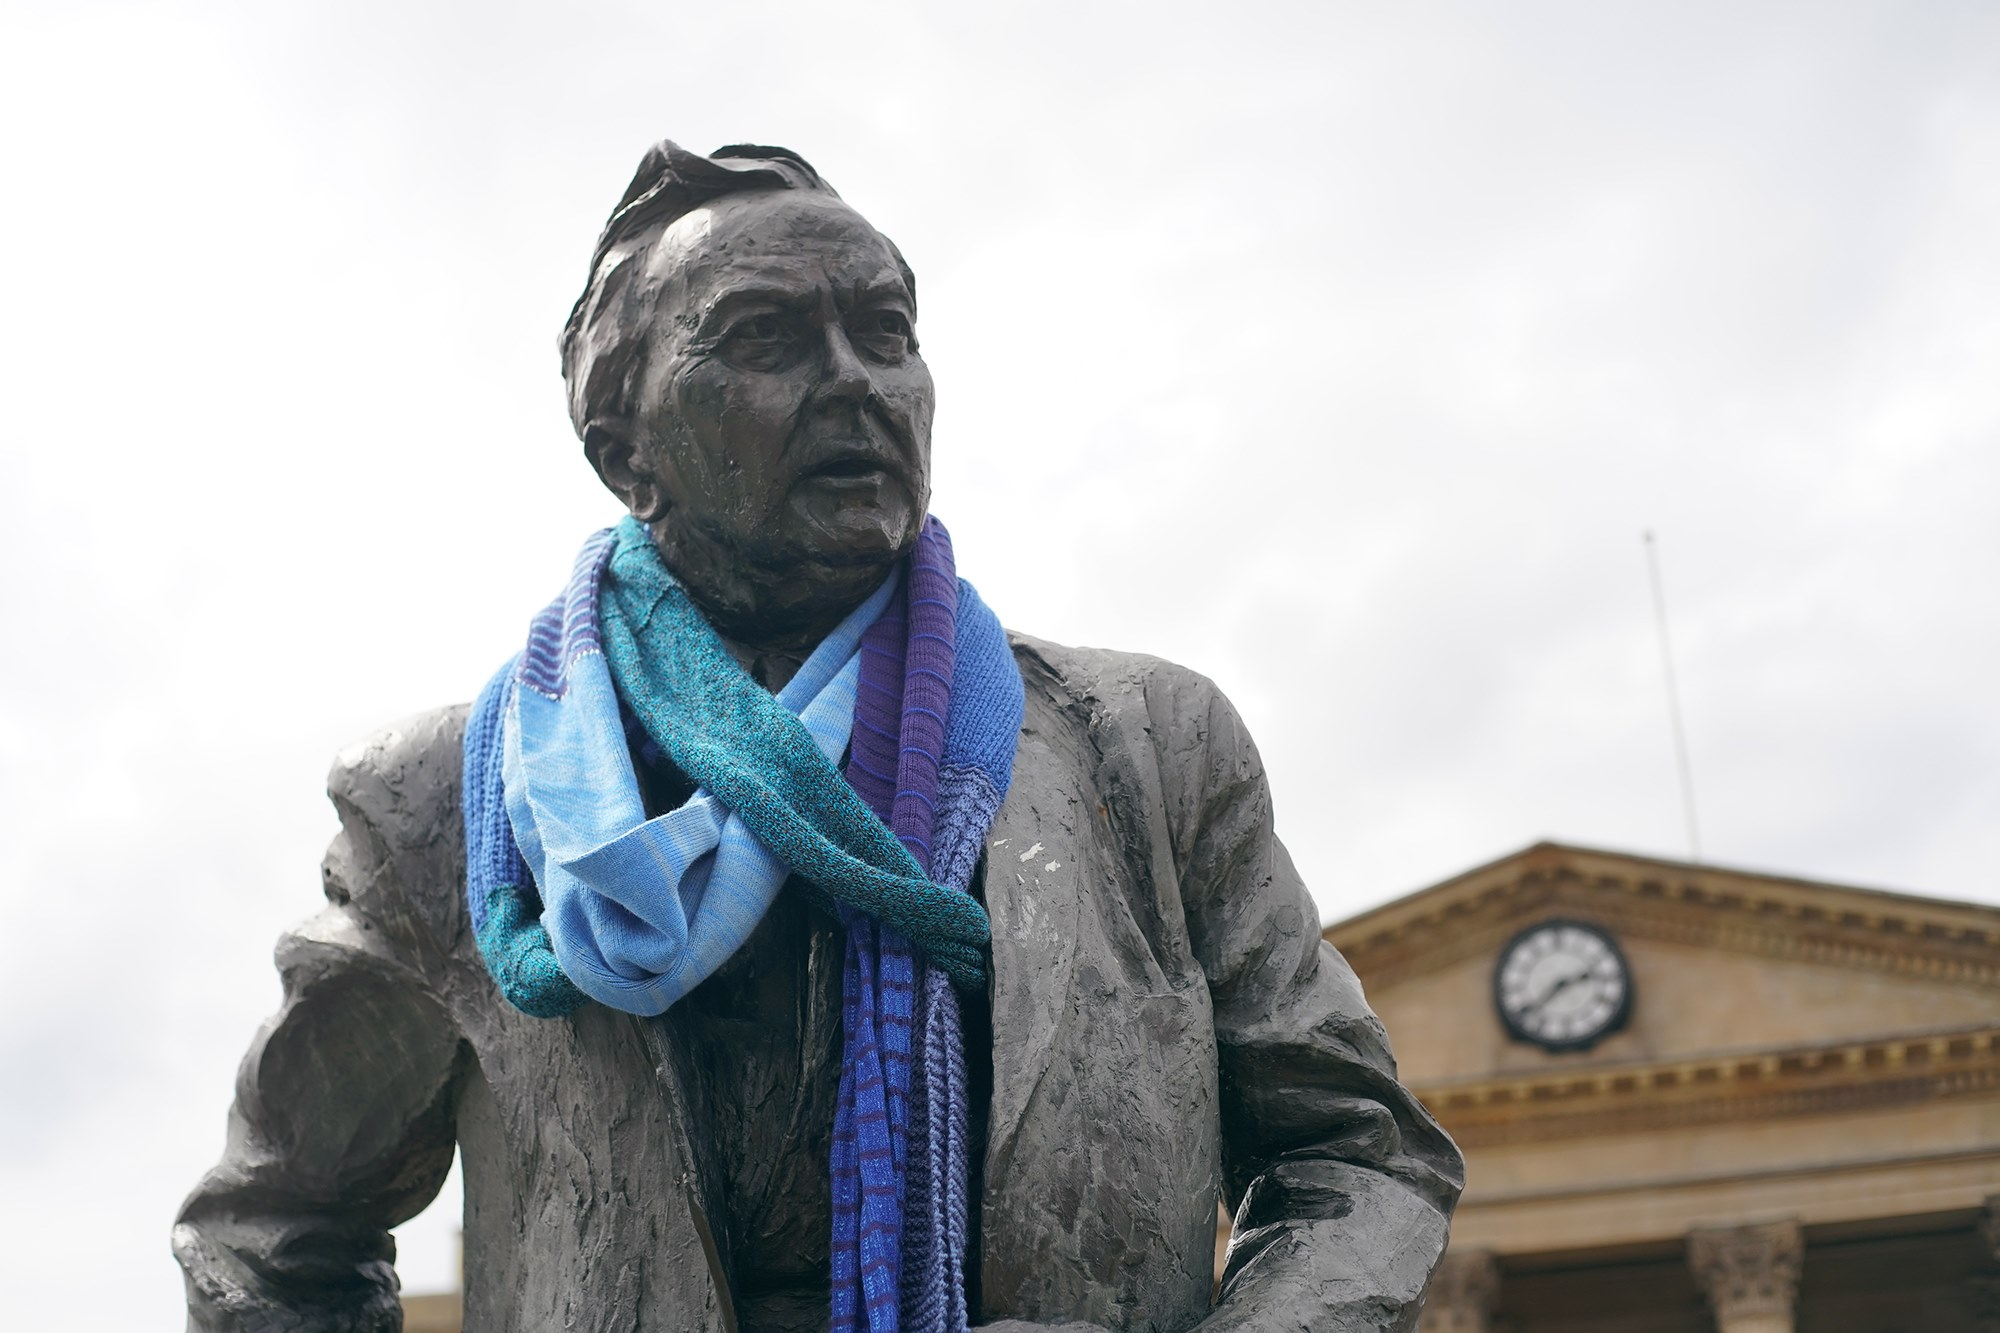 Statue of Harold Wilson wearing an oversized scarf